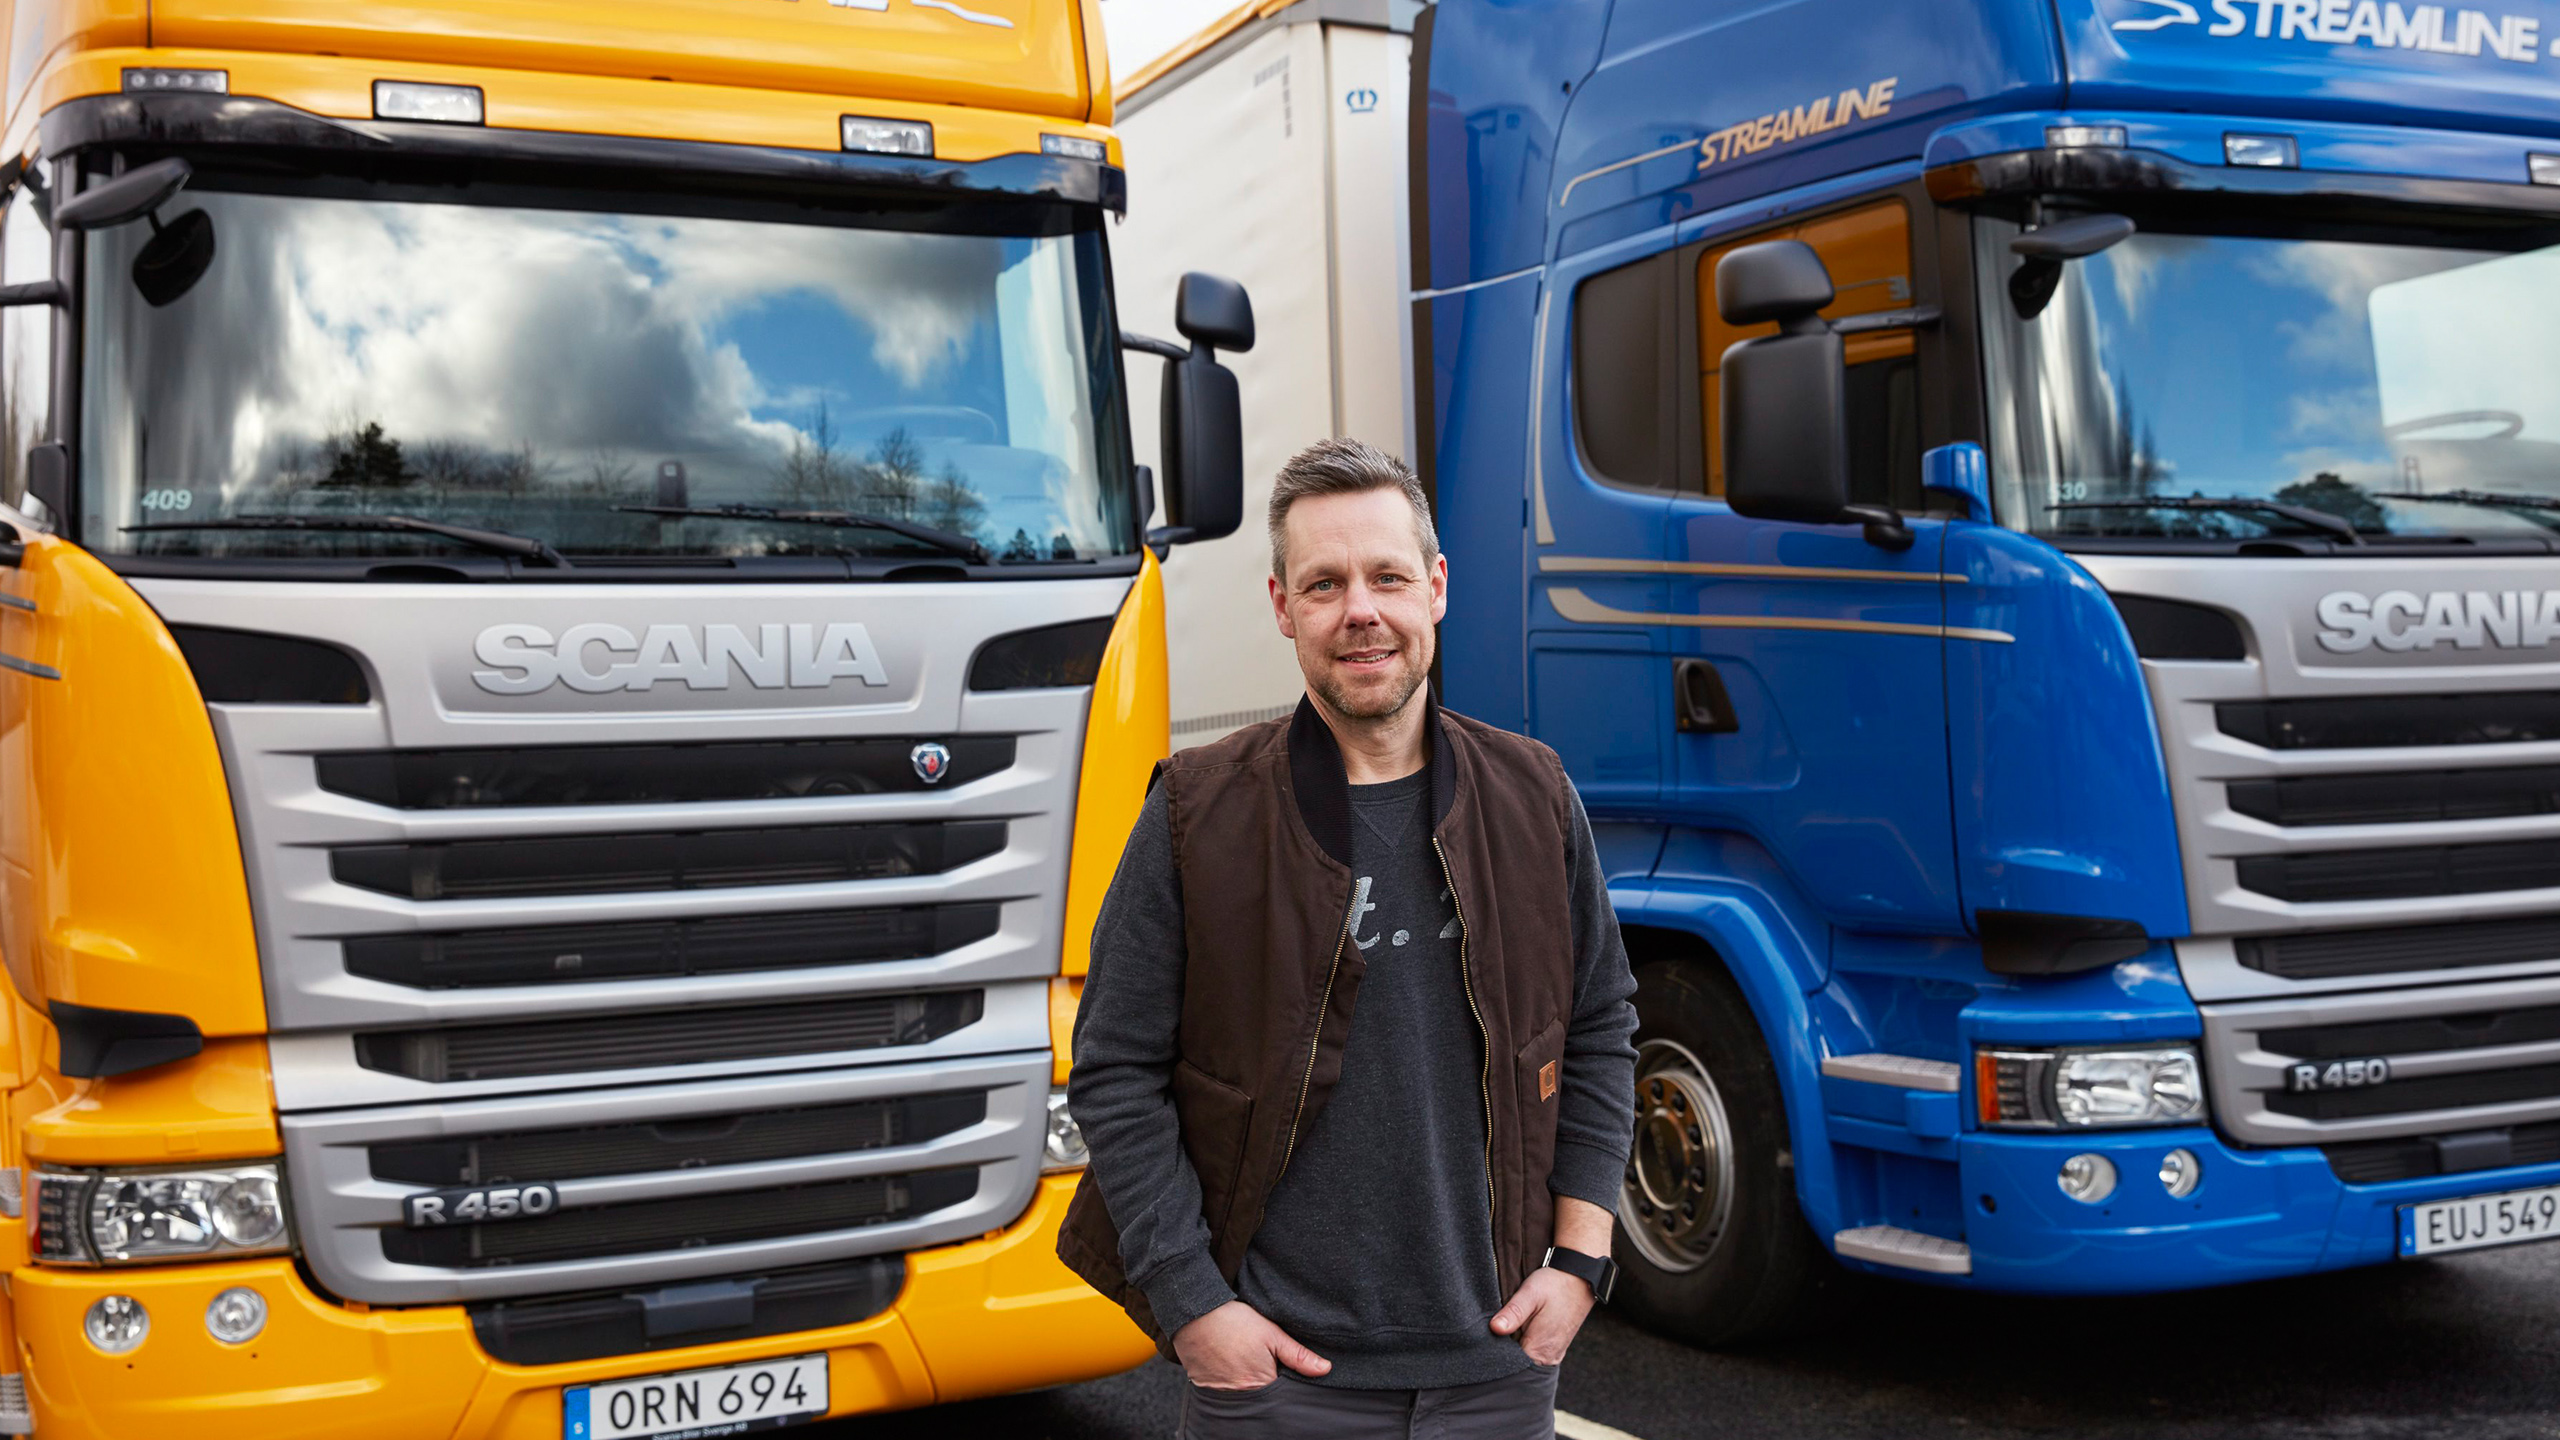 A driver standing between two Scania trucks